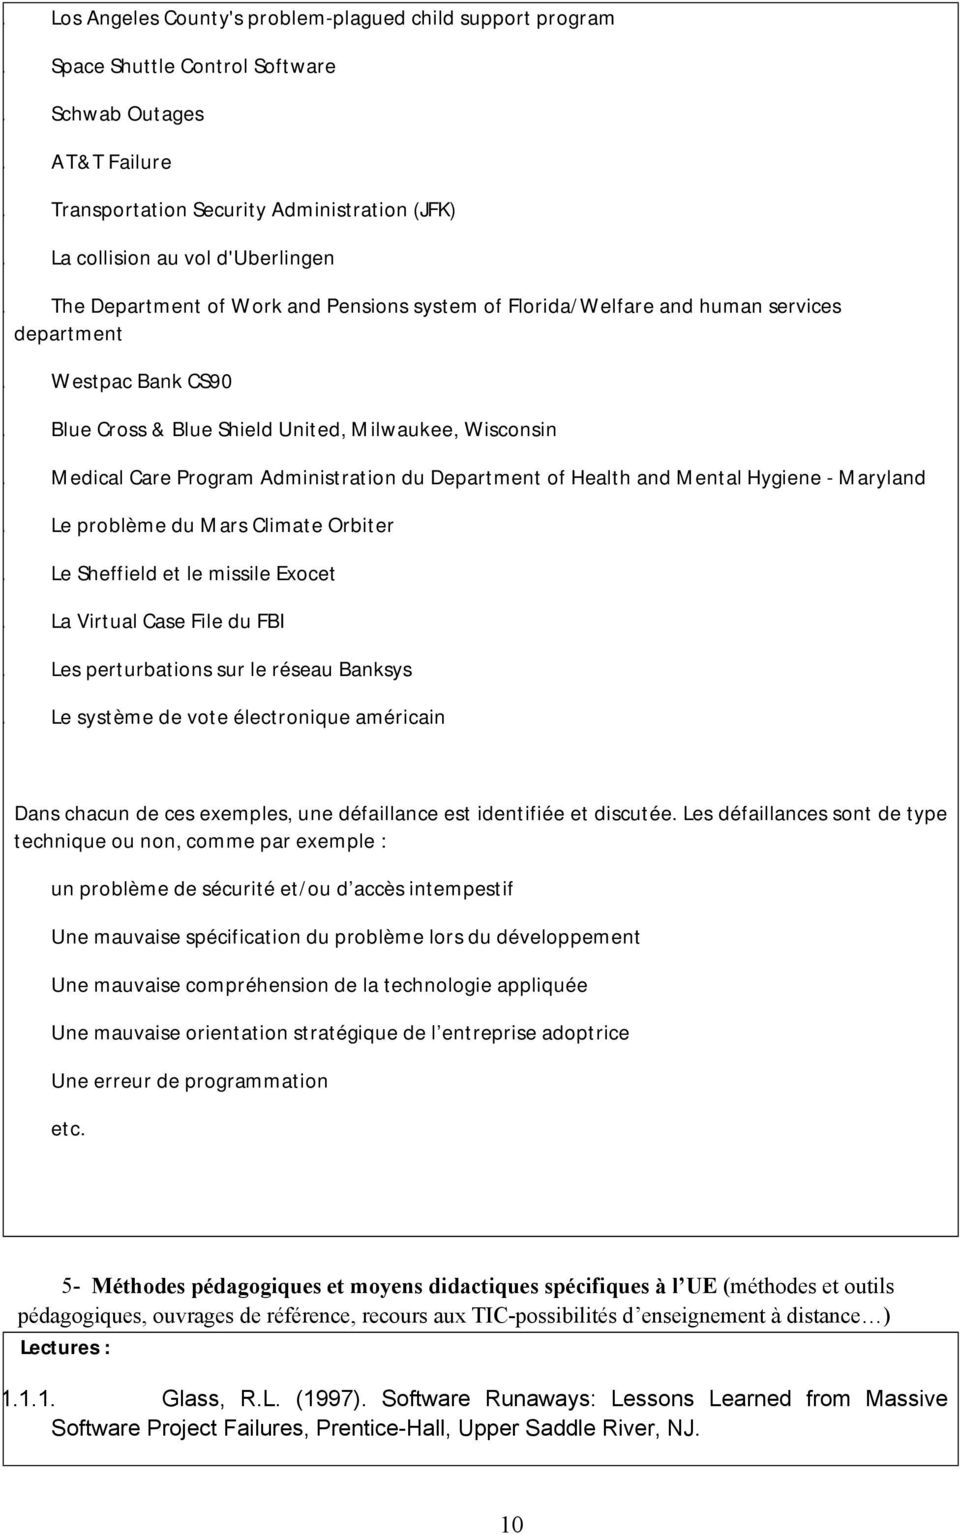 Medical Care Program Administration du Department of Health and Mental Hygiene - Maryland. Le problème du Mars Climate Orbiter. Le Sheffield et le missile Exocet. La Virtual Case File du FBI.